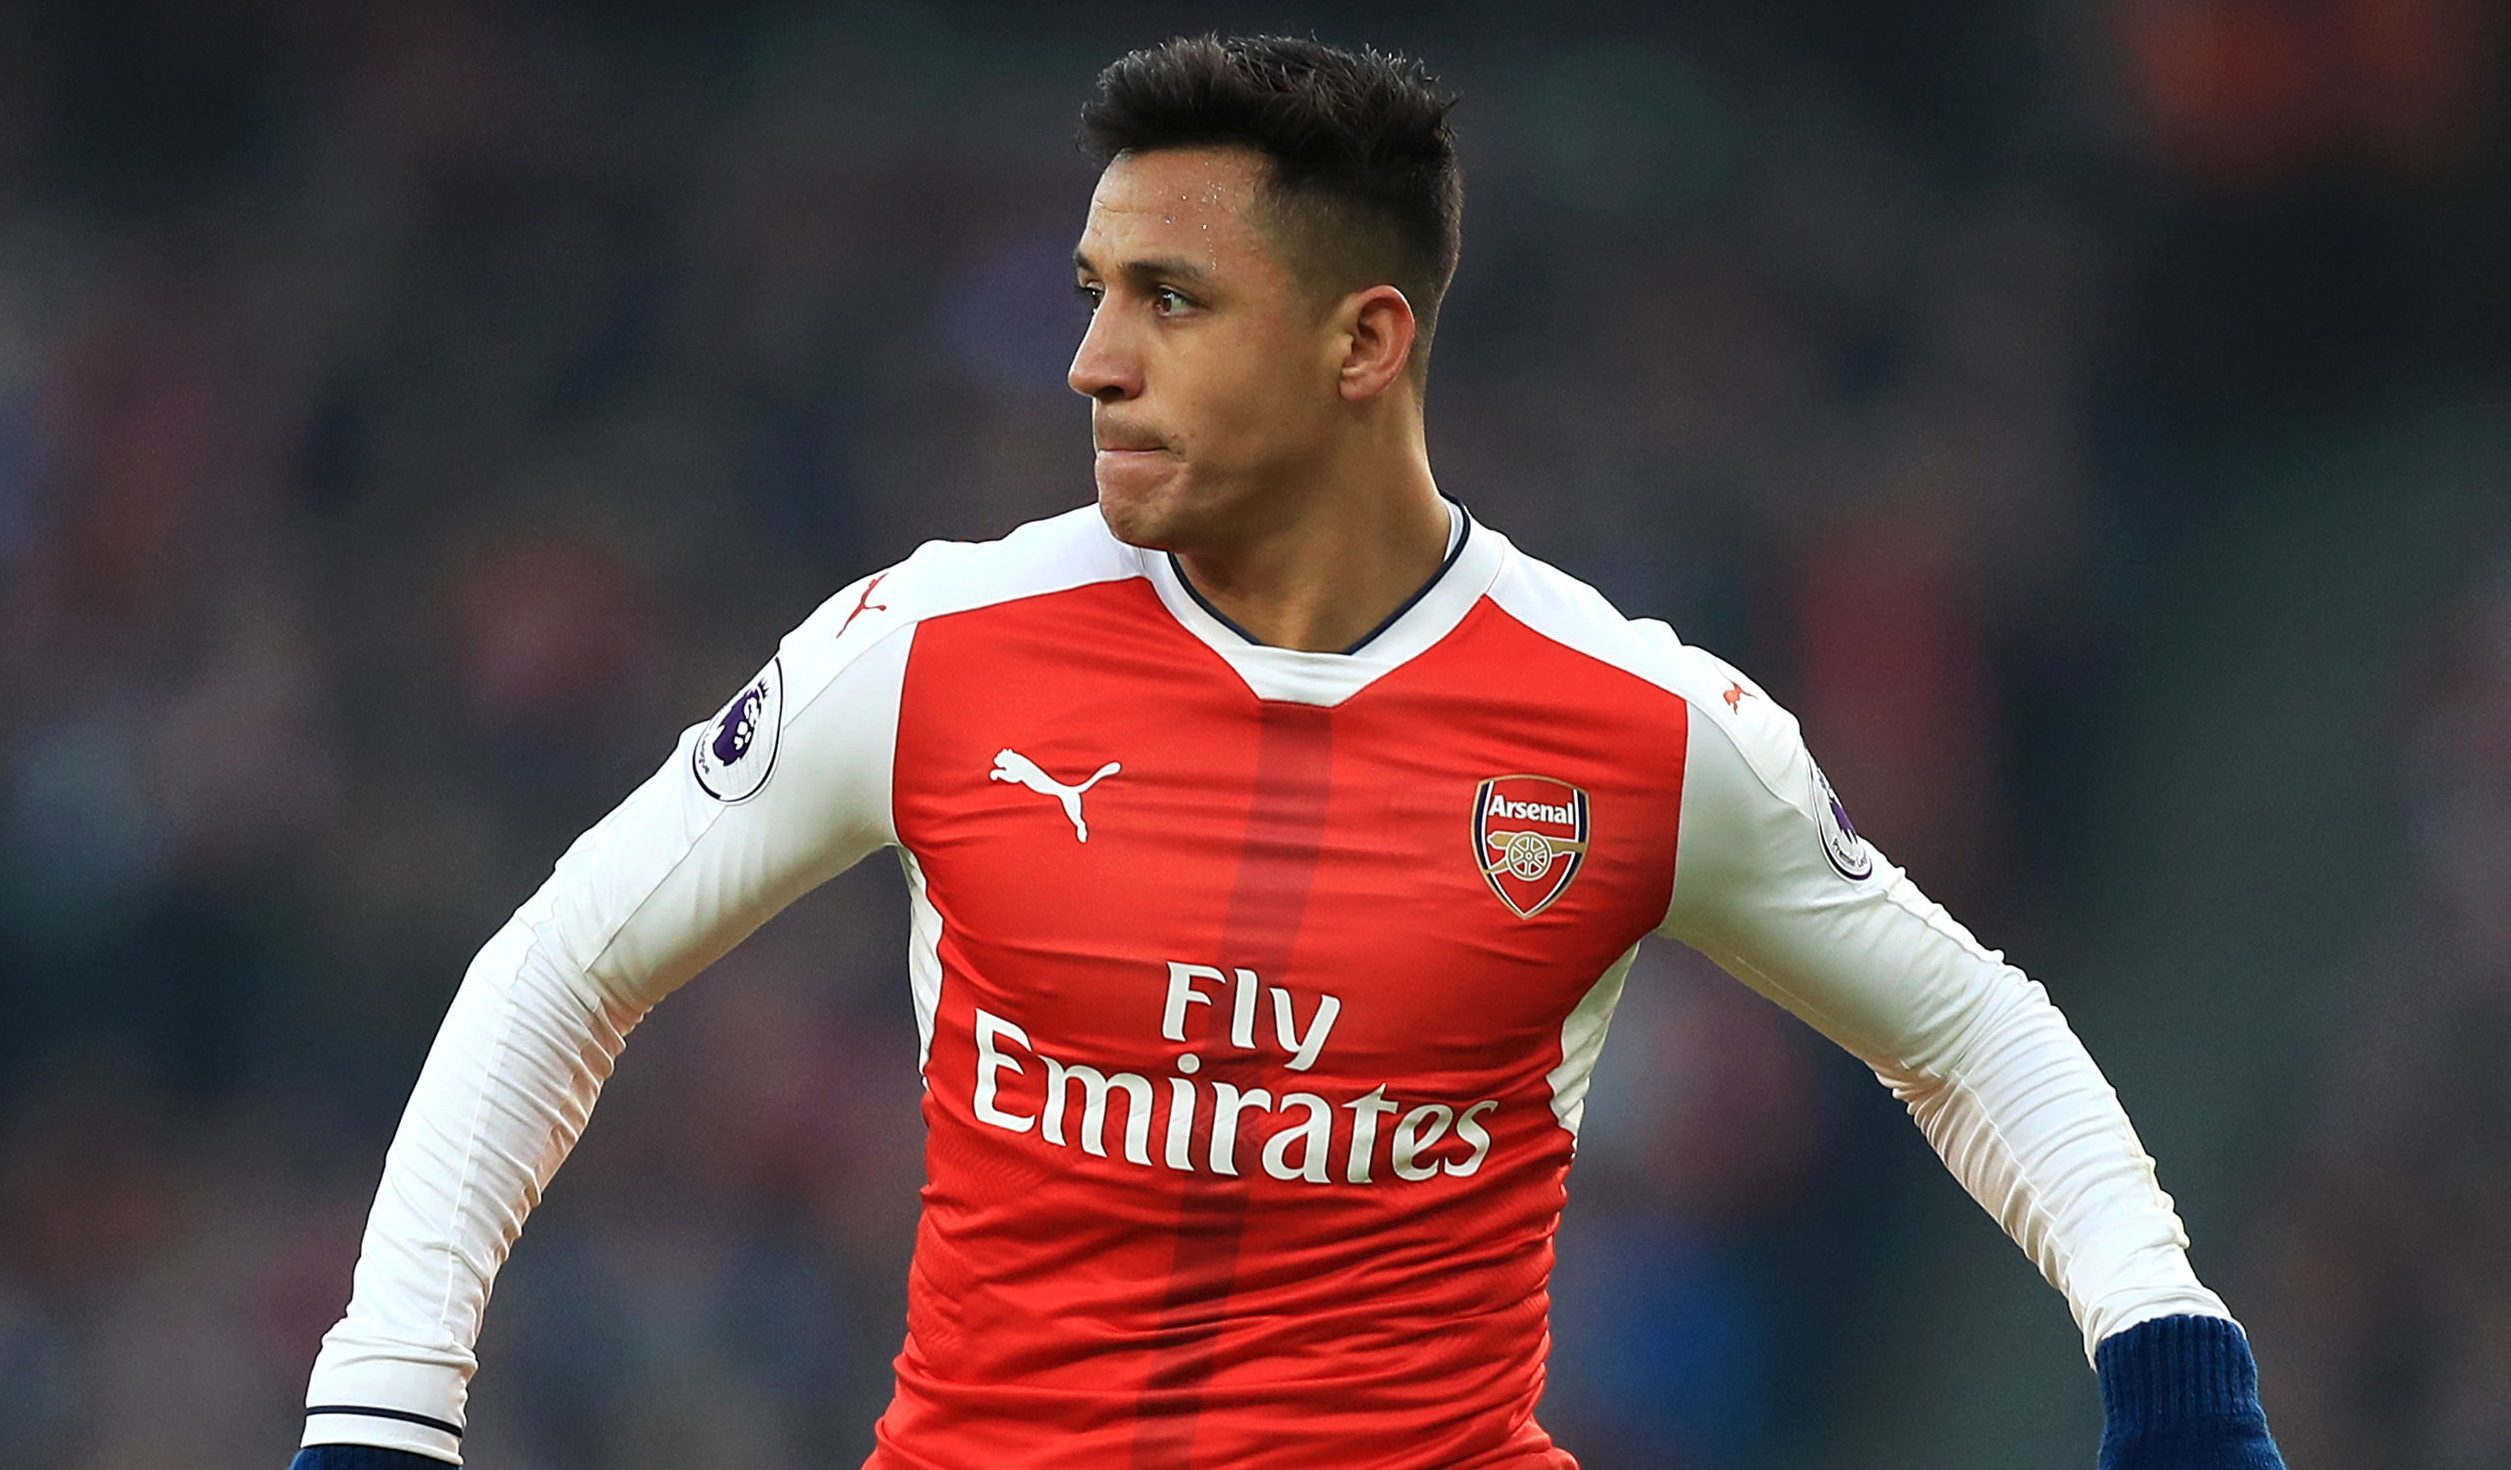 Arsenal forward Alexis Sanchez (Mike Egerton/PA Wire)